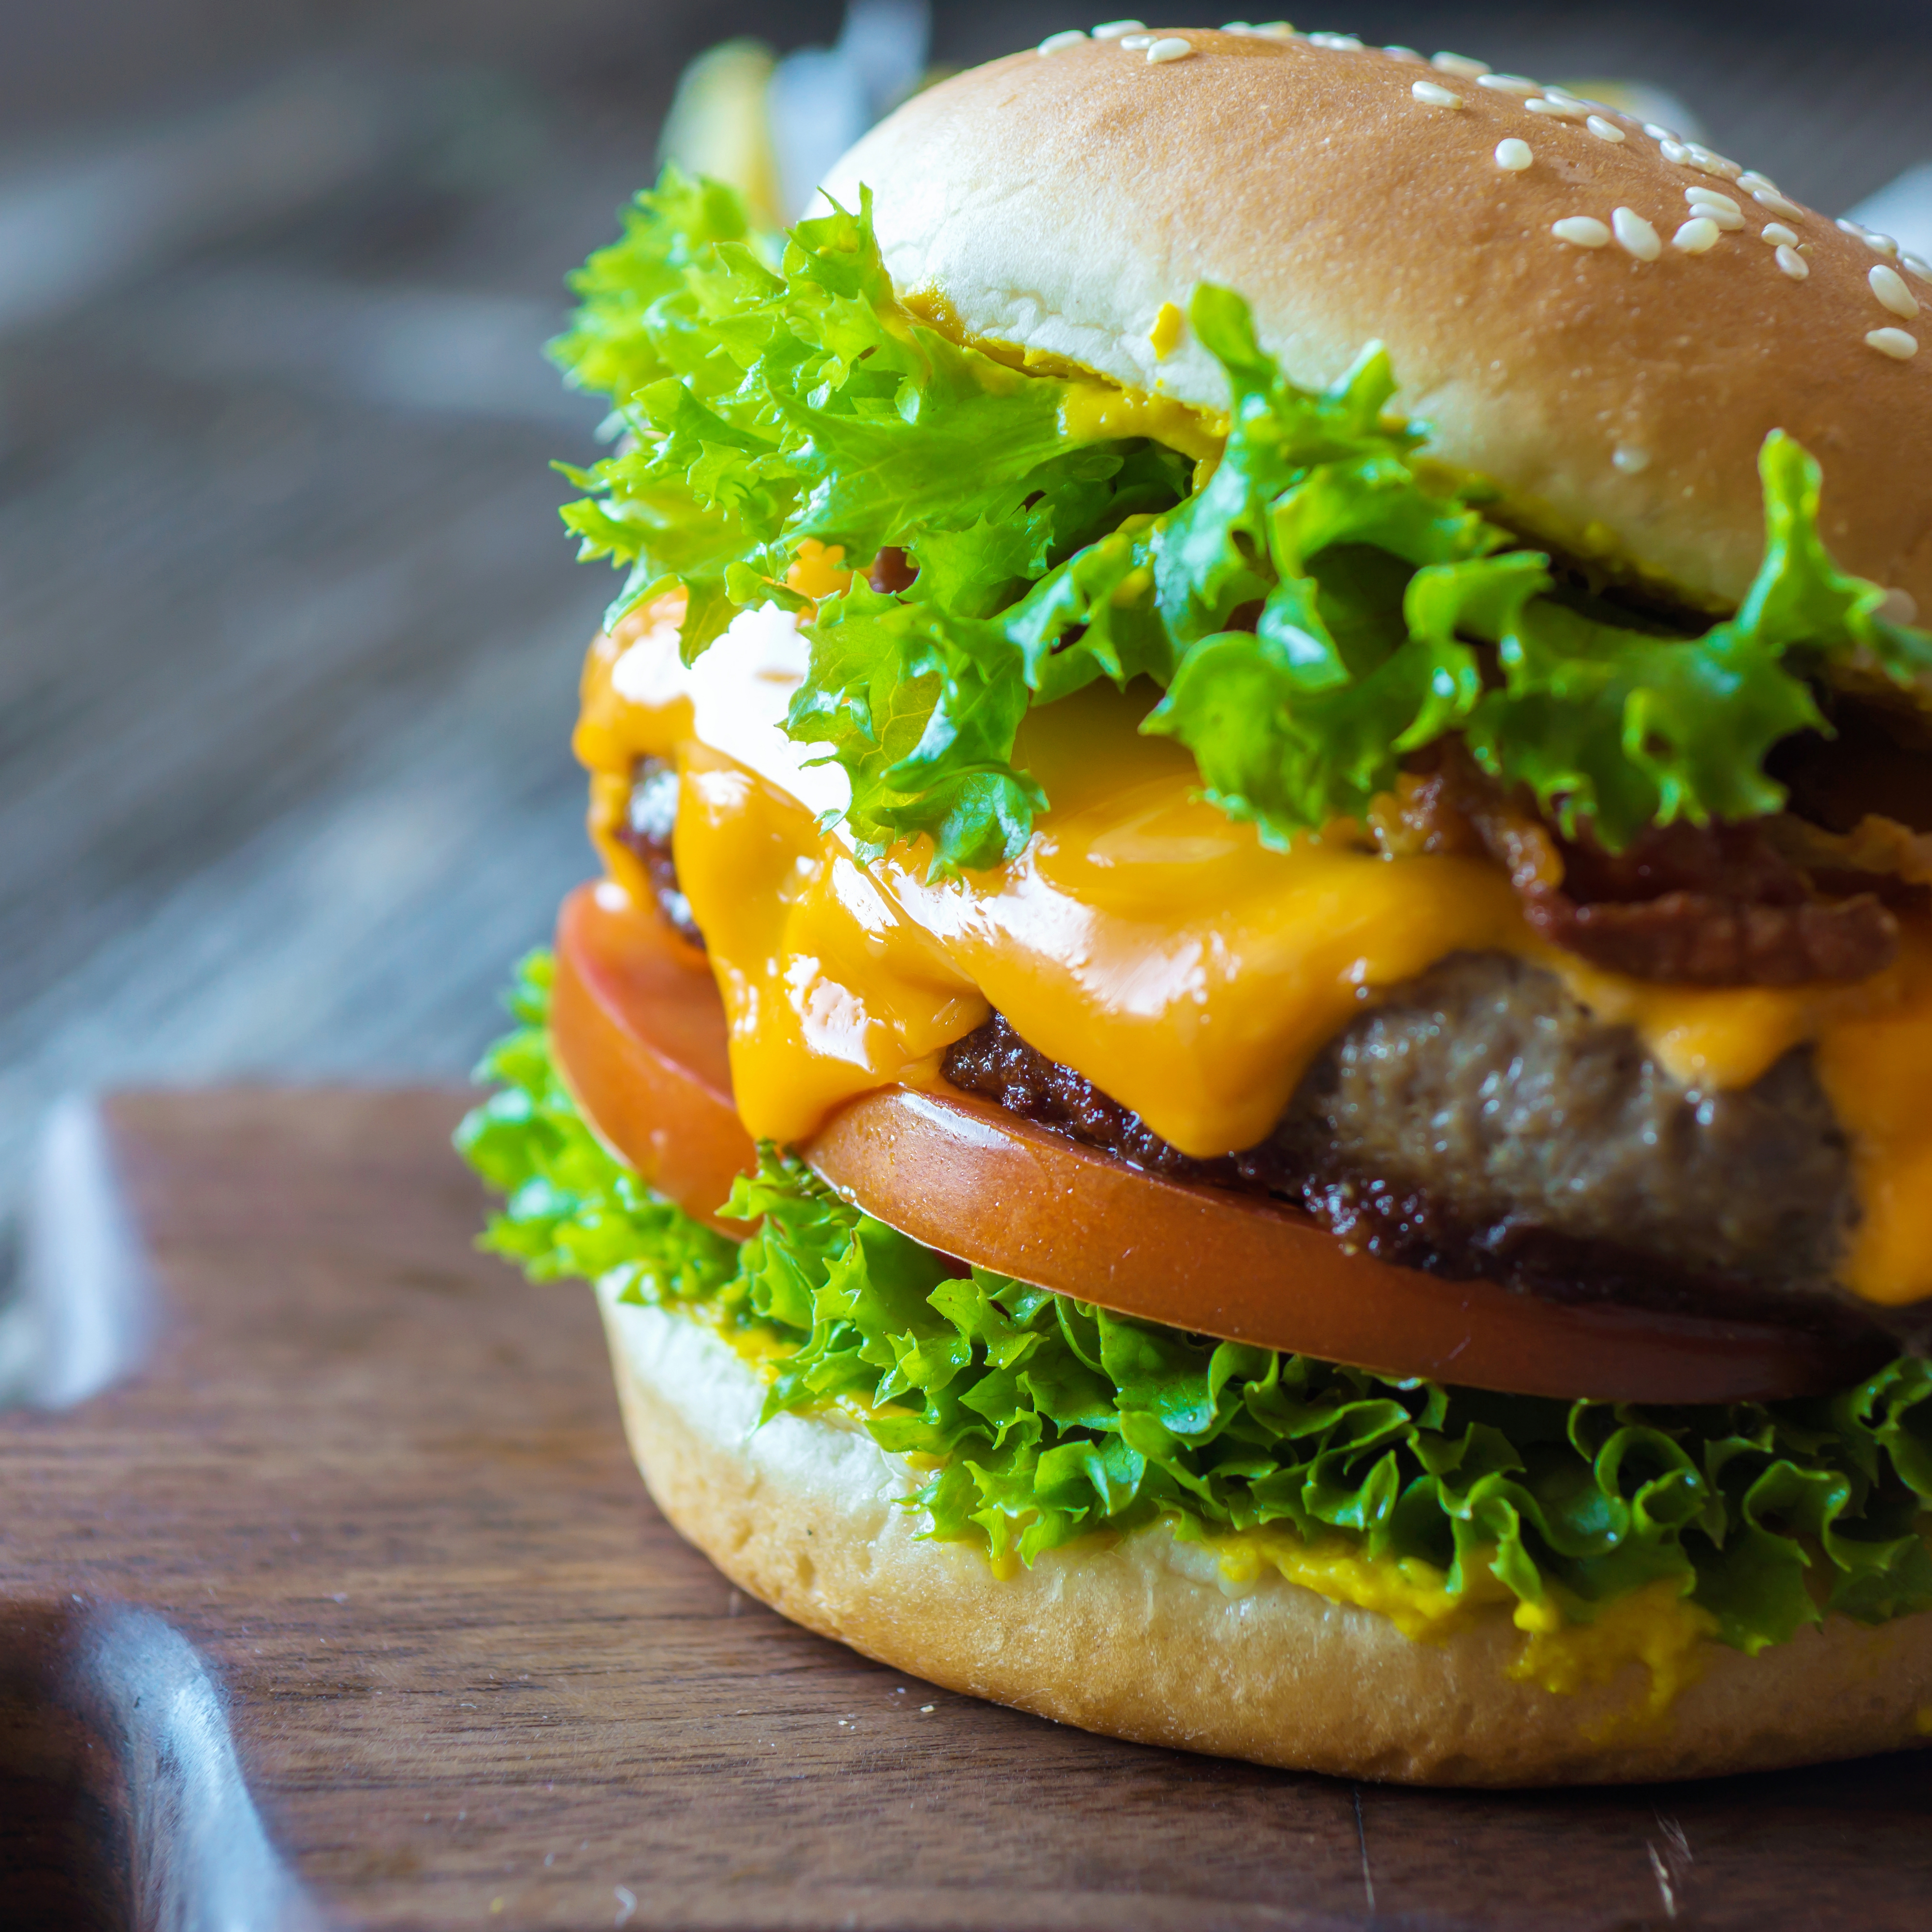 Hamburger with lettuce, tomato and melting cheese